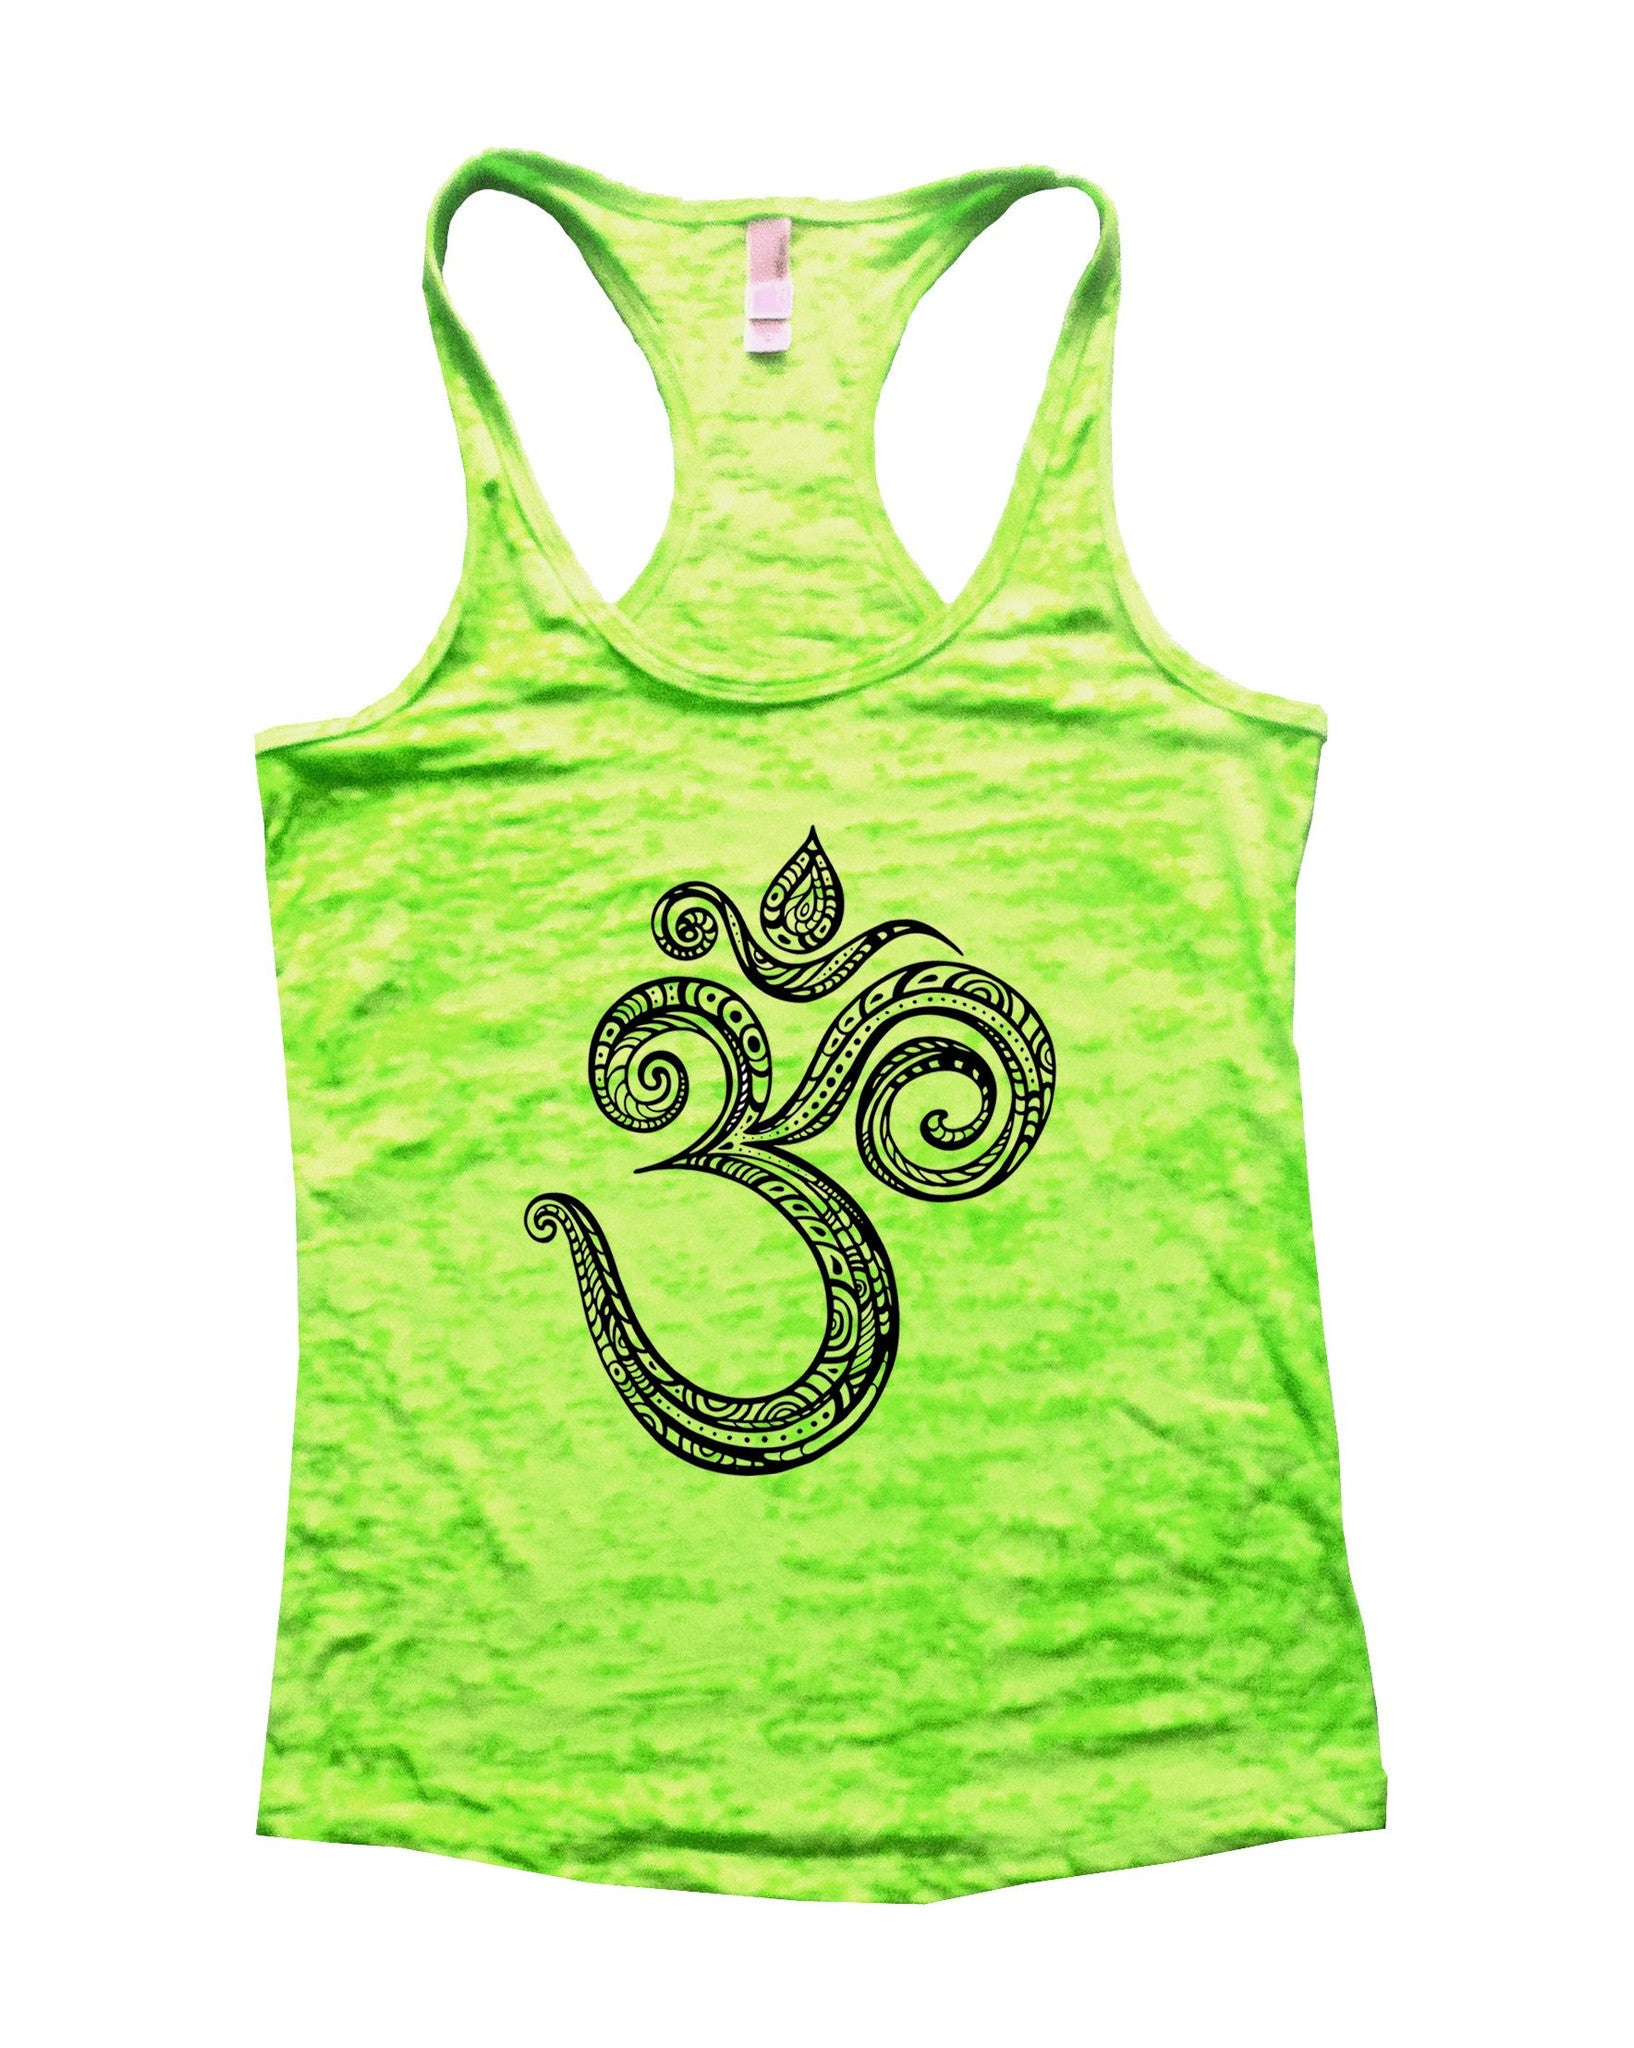 Ohm Burnout Tank Top By BurnoutTankTops.com - 908 - Funny Shirts Tank Tops Burnouts and Triblends  - 3